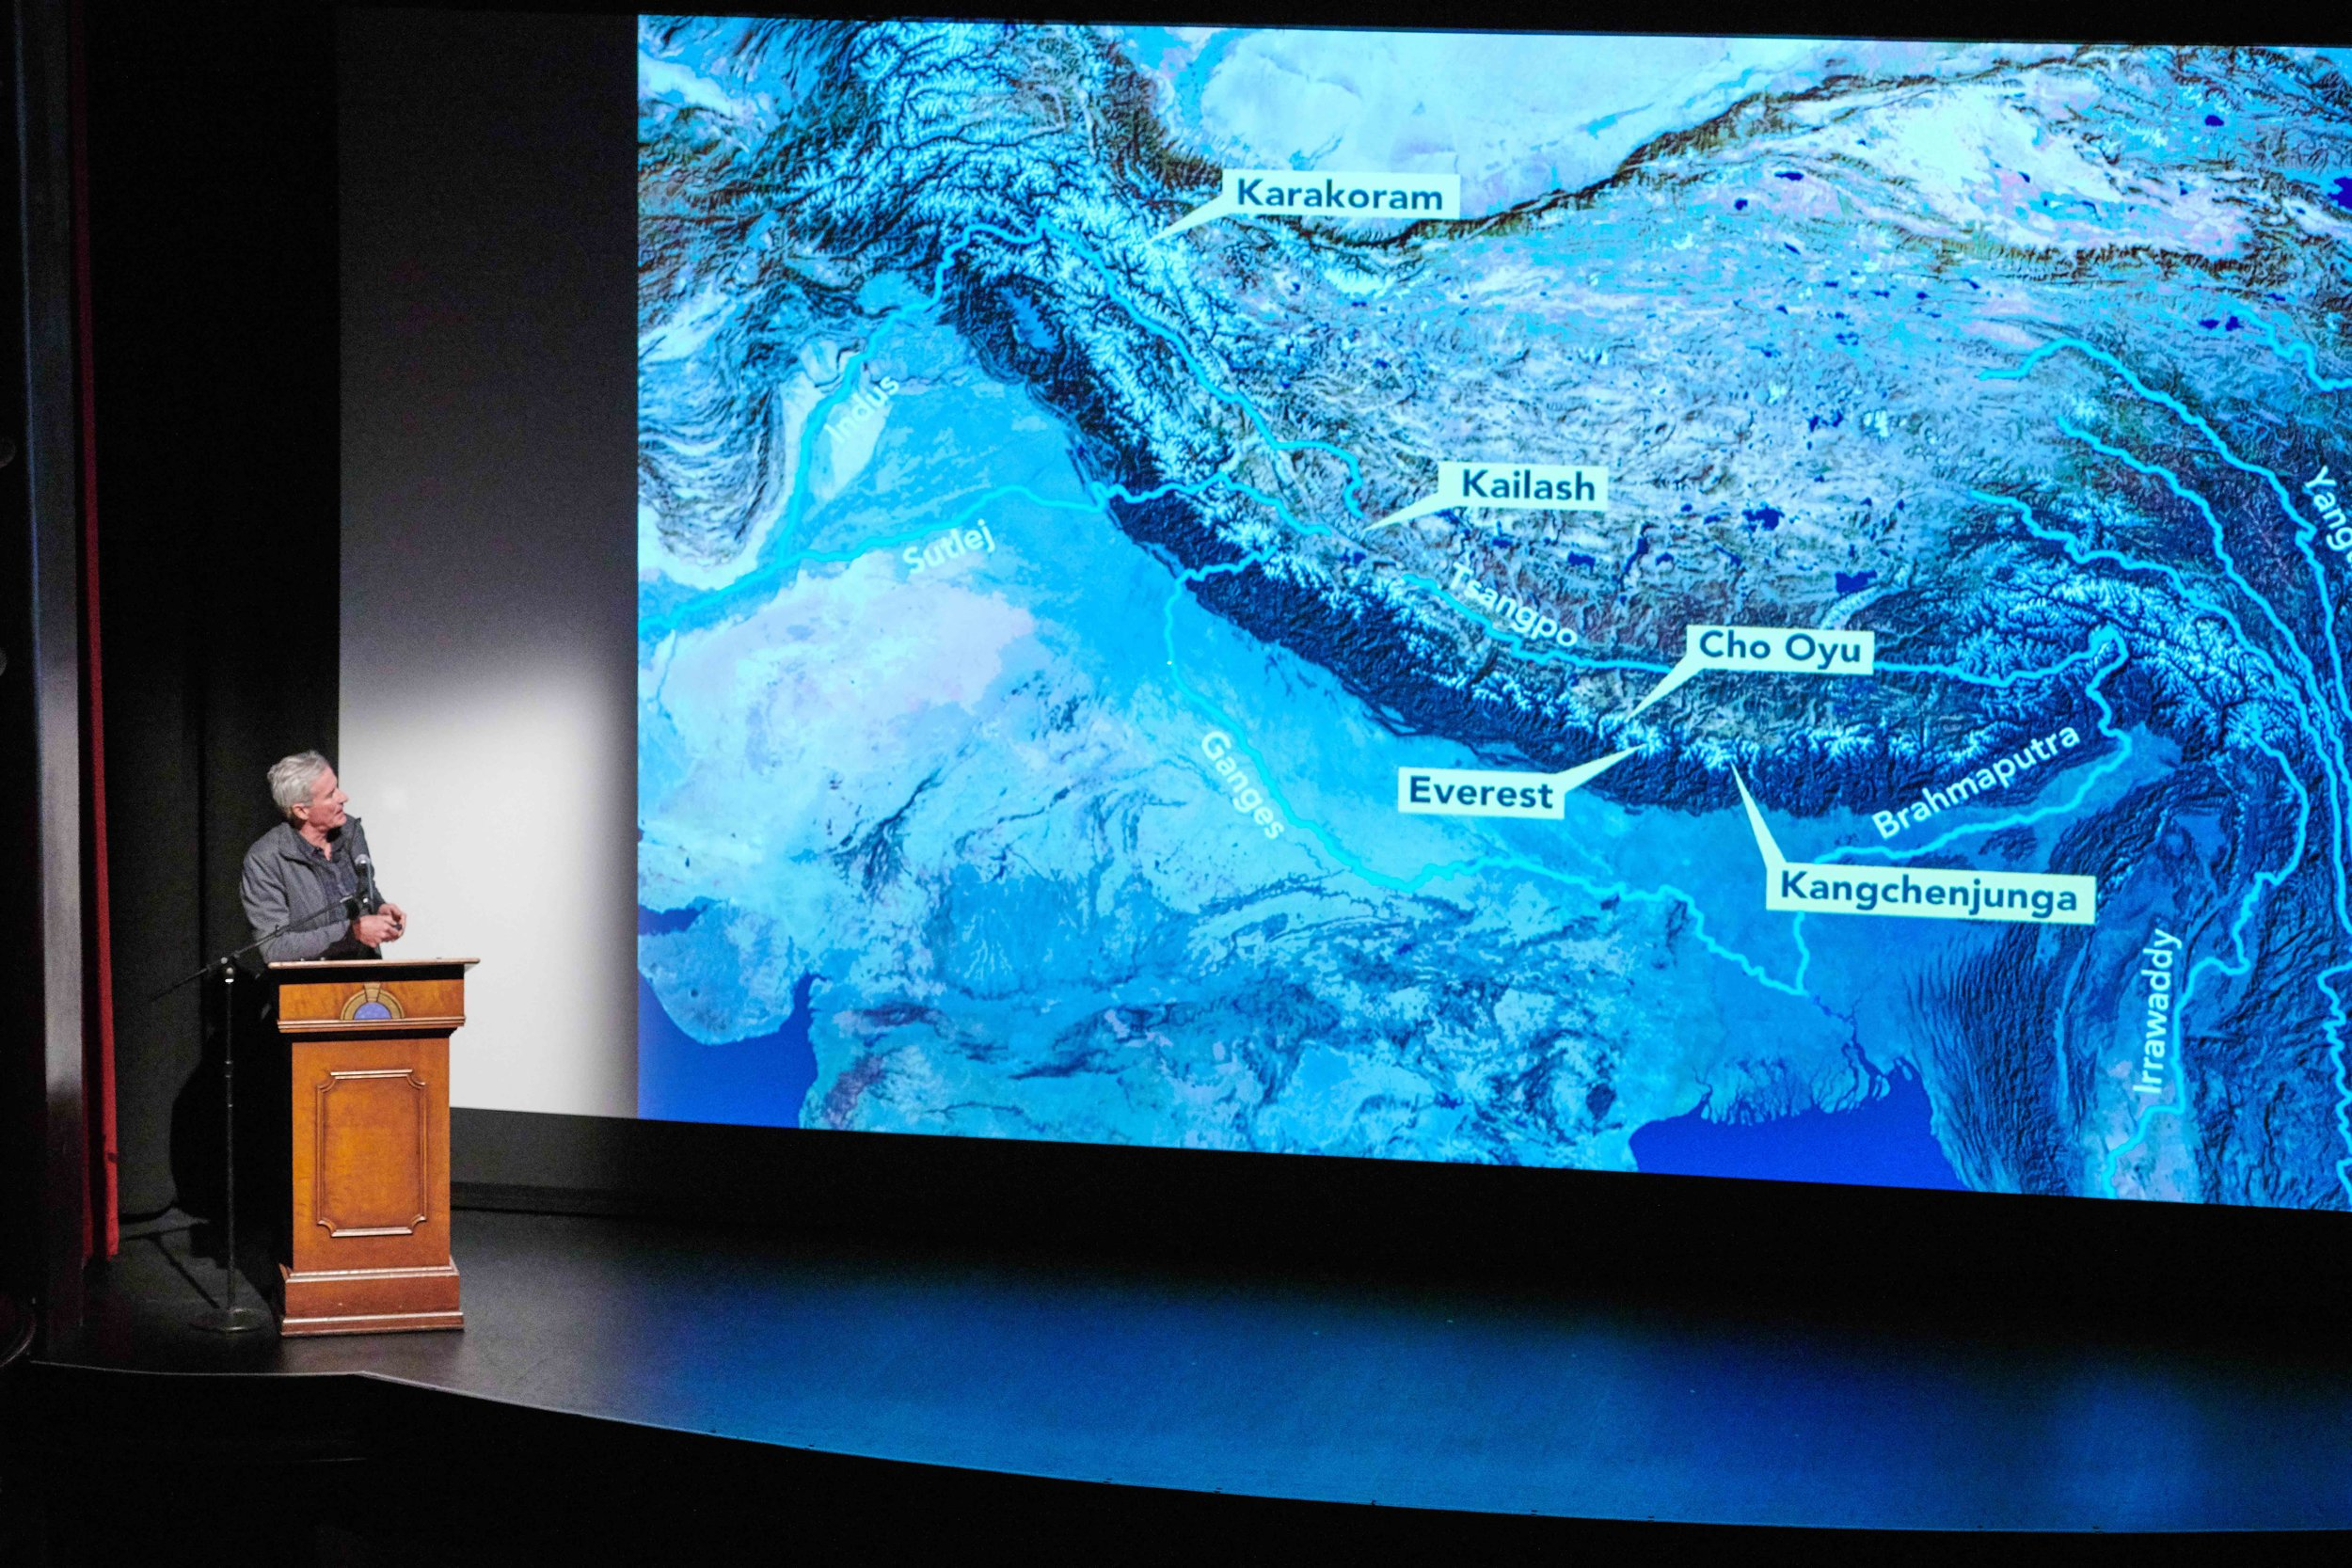 David Breashears describes the major river systems in India.